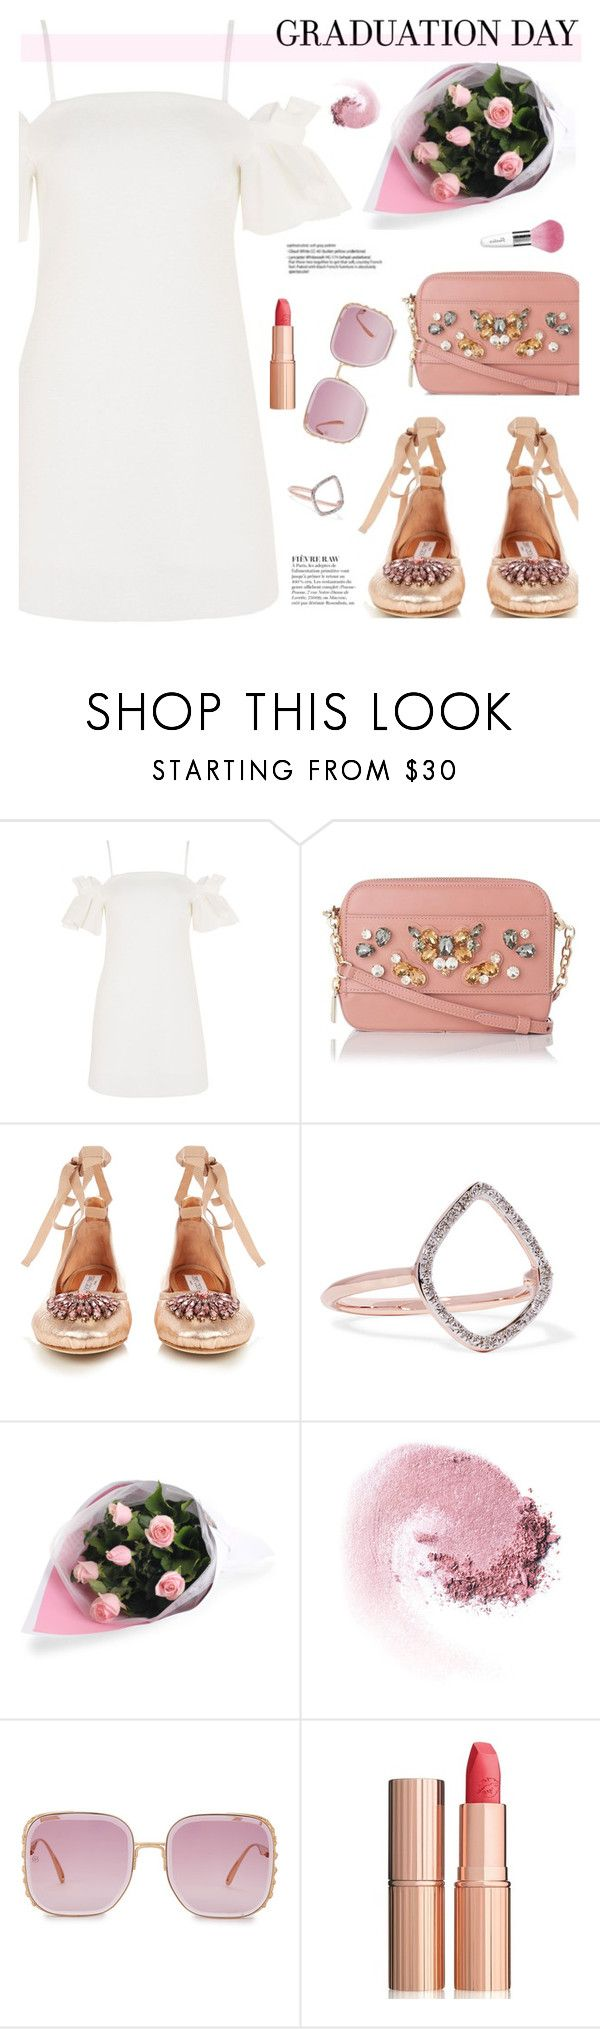 """Congrats, Grad: Graduation Day Style"" by joliedy ❤ liked on Polyvore featuring Topshop, L.K.Bennett, Jimmy Choo, Monica Vinader, NARS Cosmetics, Anja, Elie Saab, Guerlain and Charlotte Tilbury"